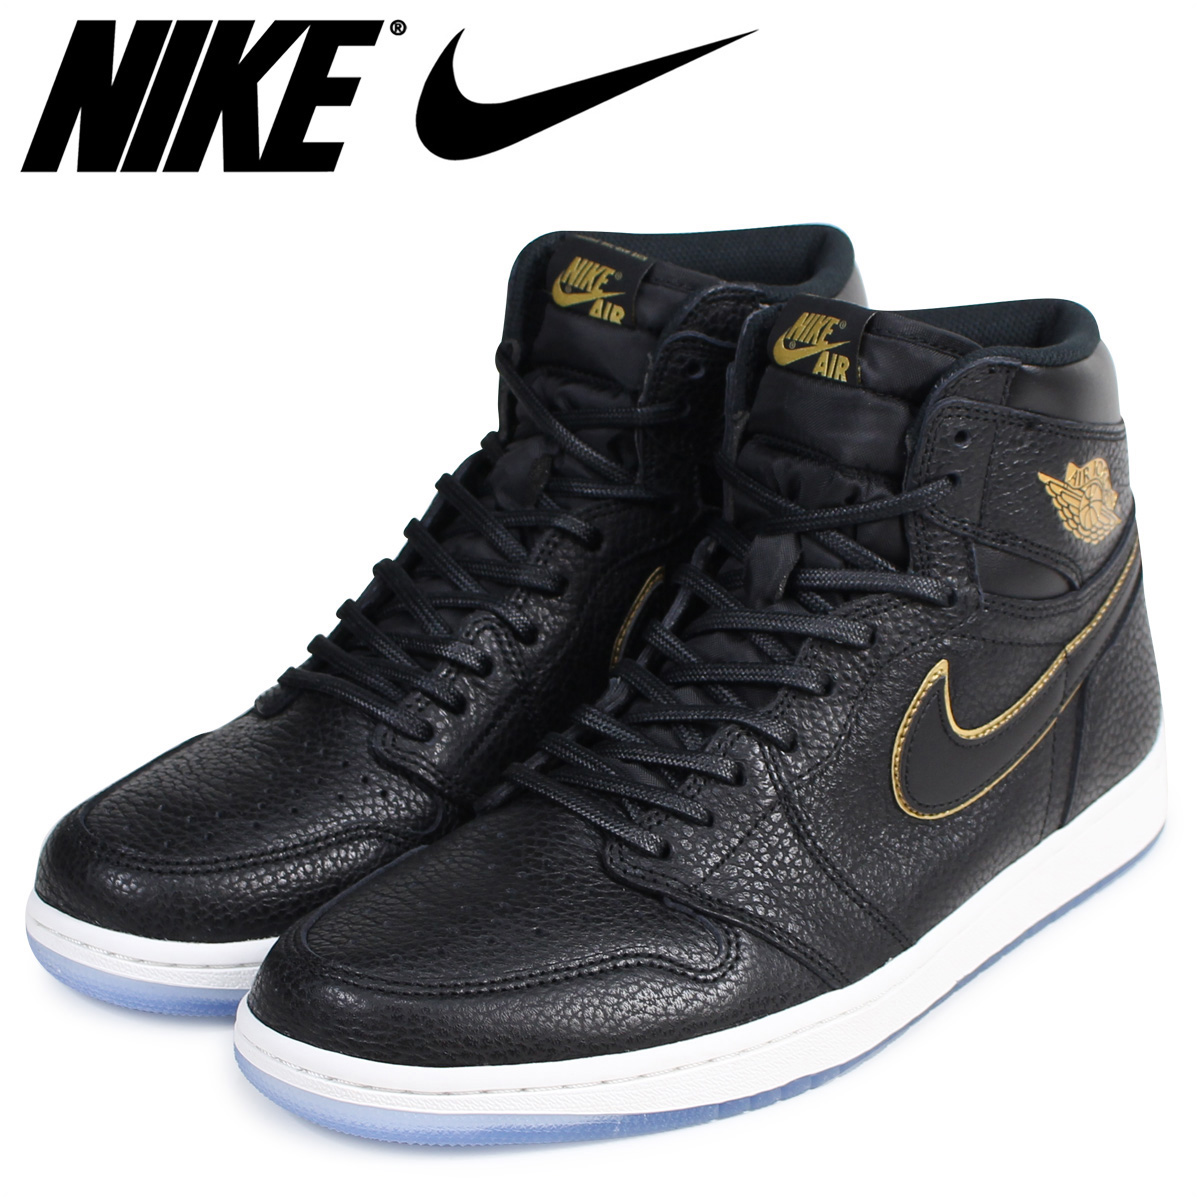 uk availability d981e f80af NIKE Nike Air Jordan 1 nostalgic high sneakers AIR JORDAN 1 RETRO HIGH OG  555,088-031 men s shoes black  load planned Shinnyu load in reservation  product ...